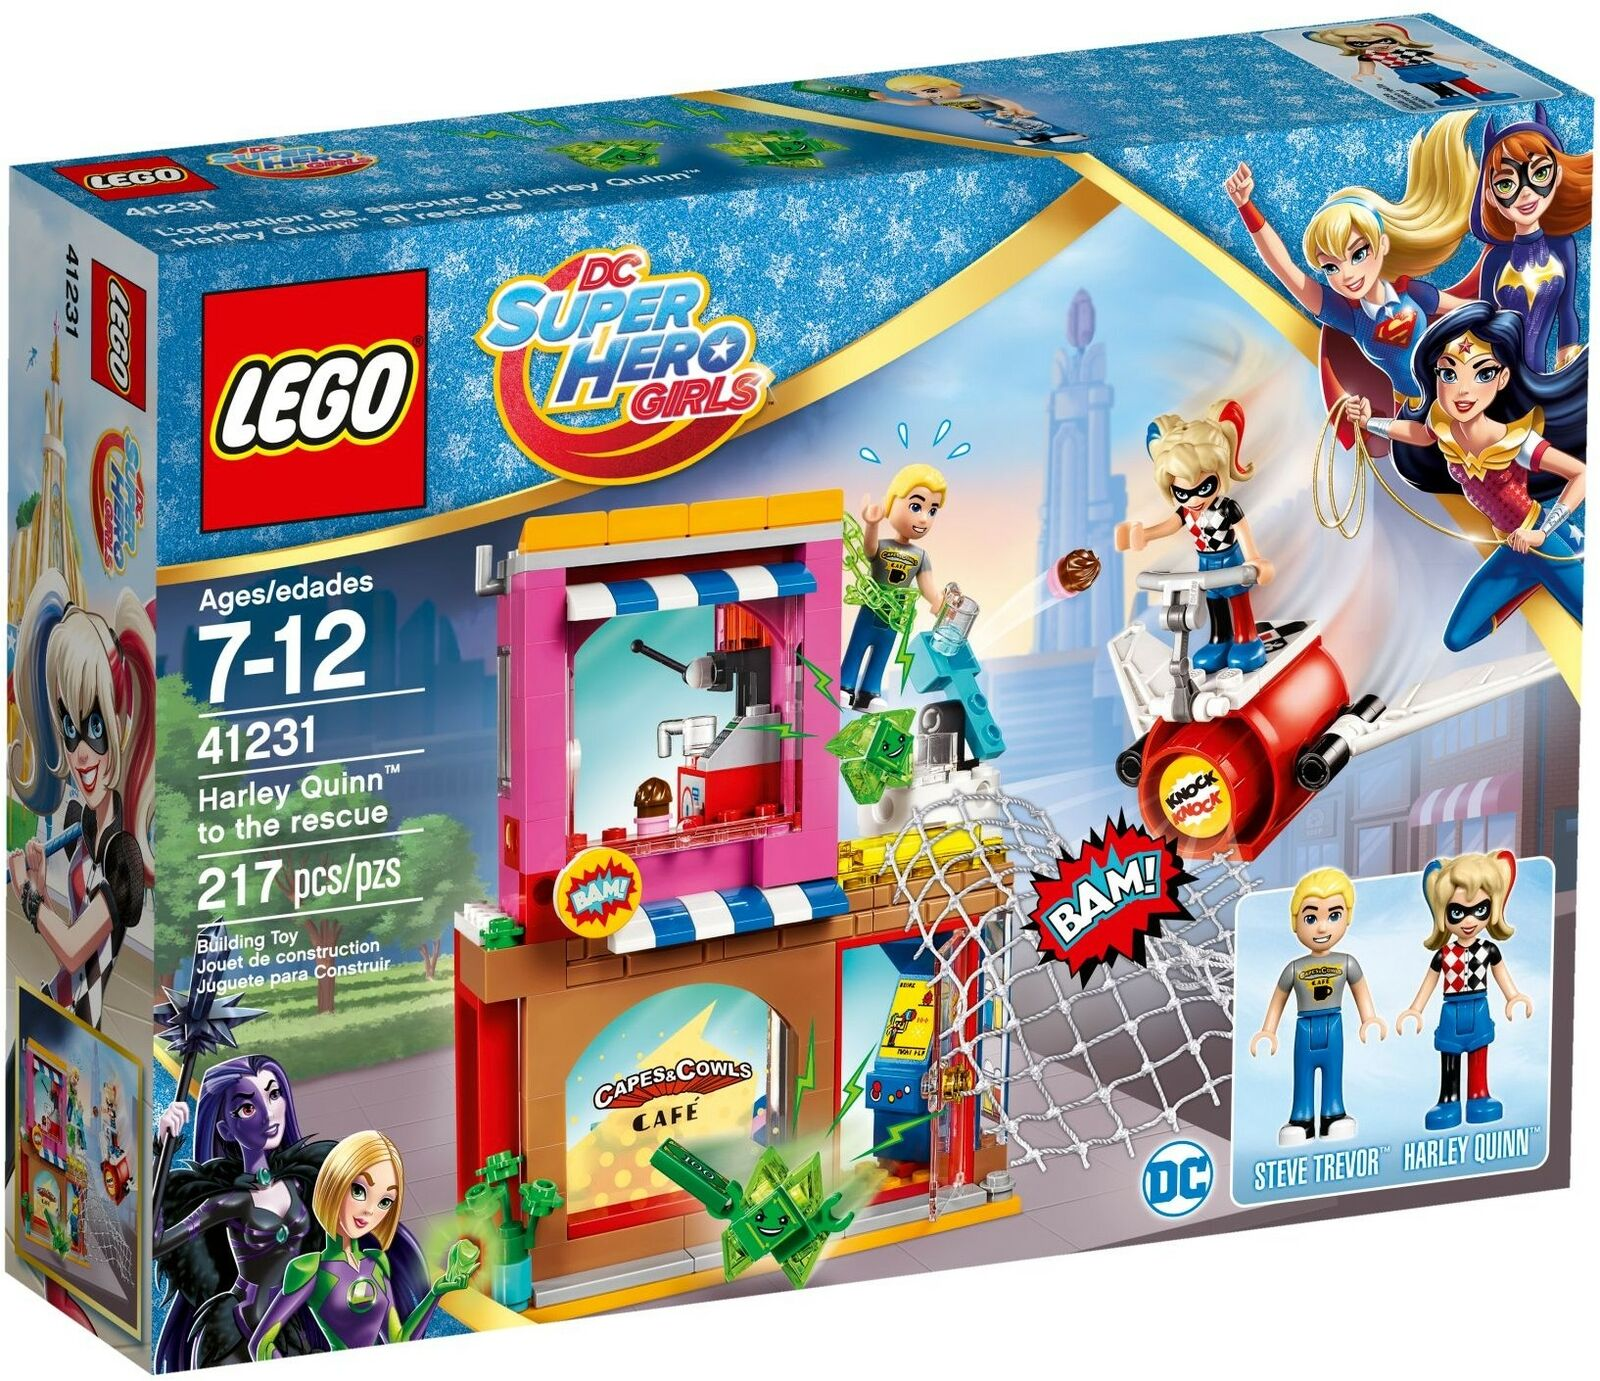 Lego Super Heroes Heroes Heroes - Harley Quinn to the rescue (by Lego) 41231 edc899